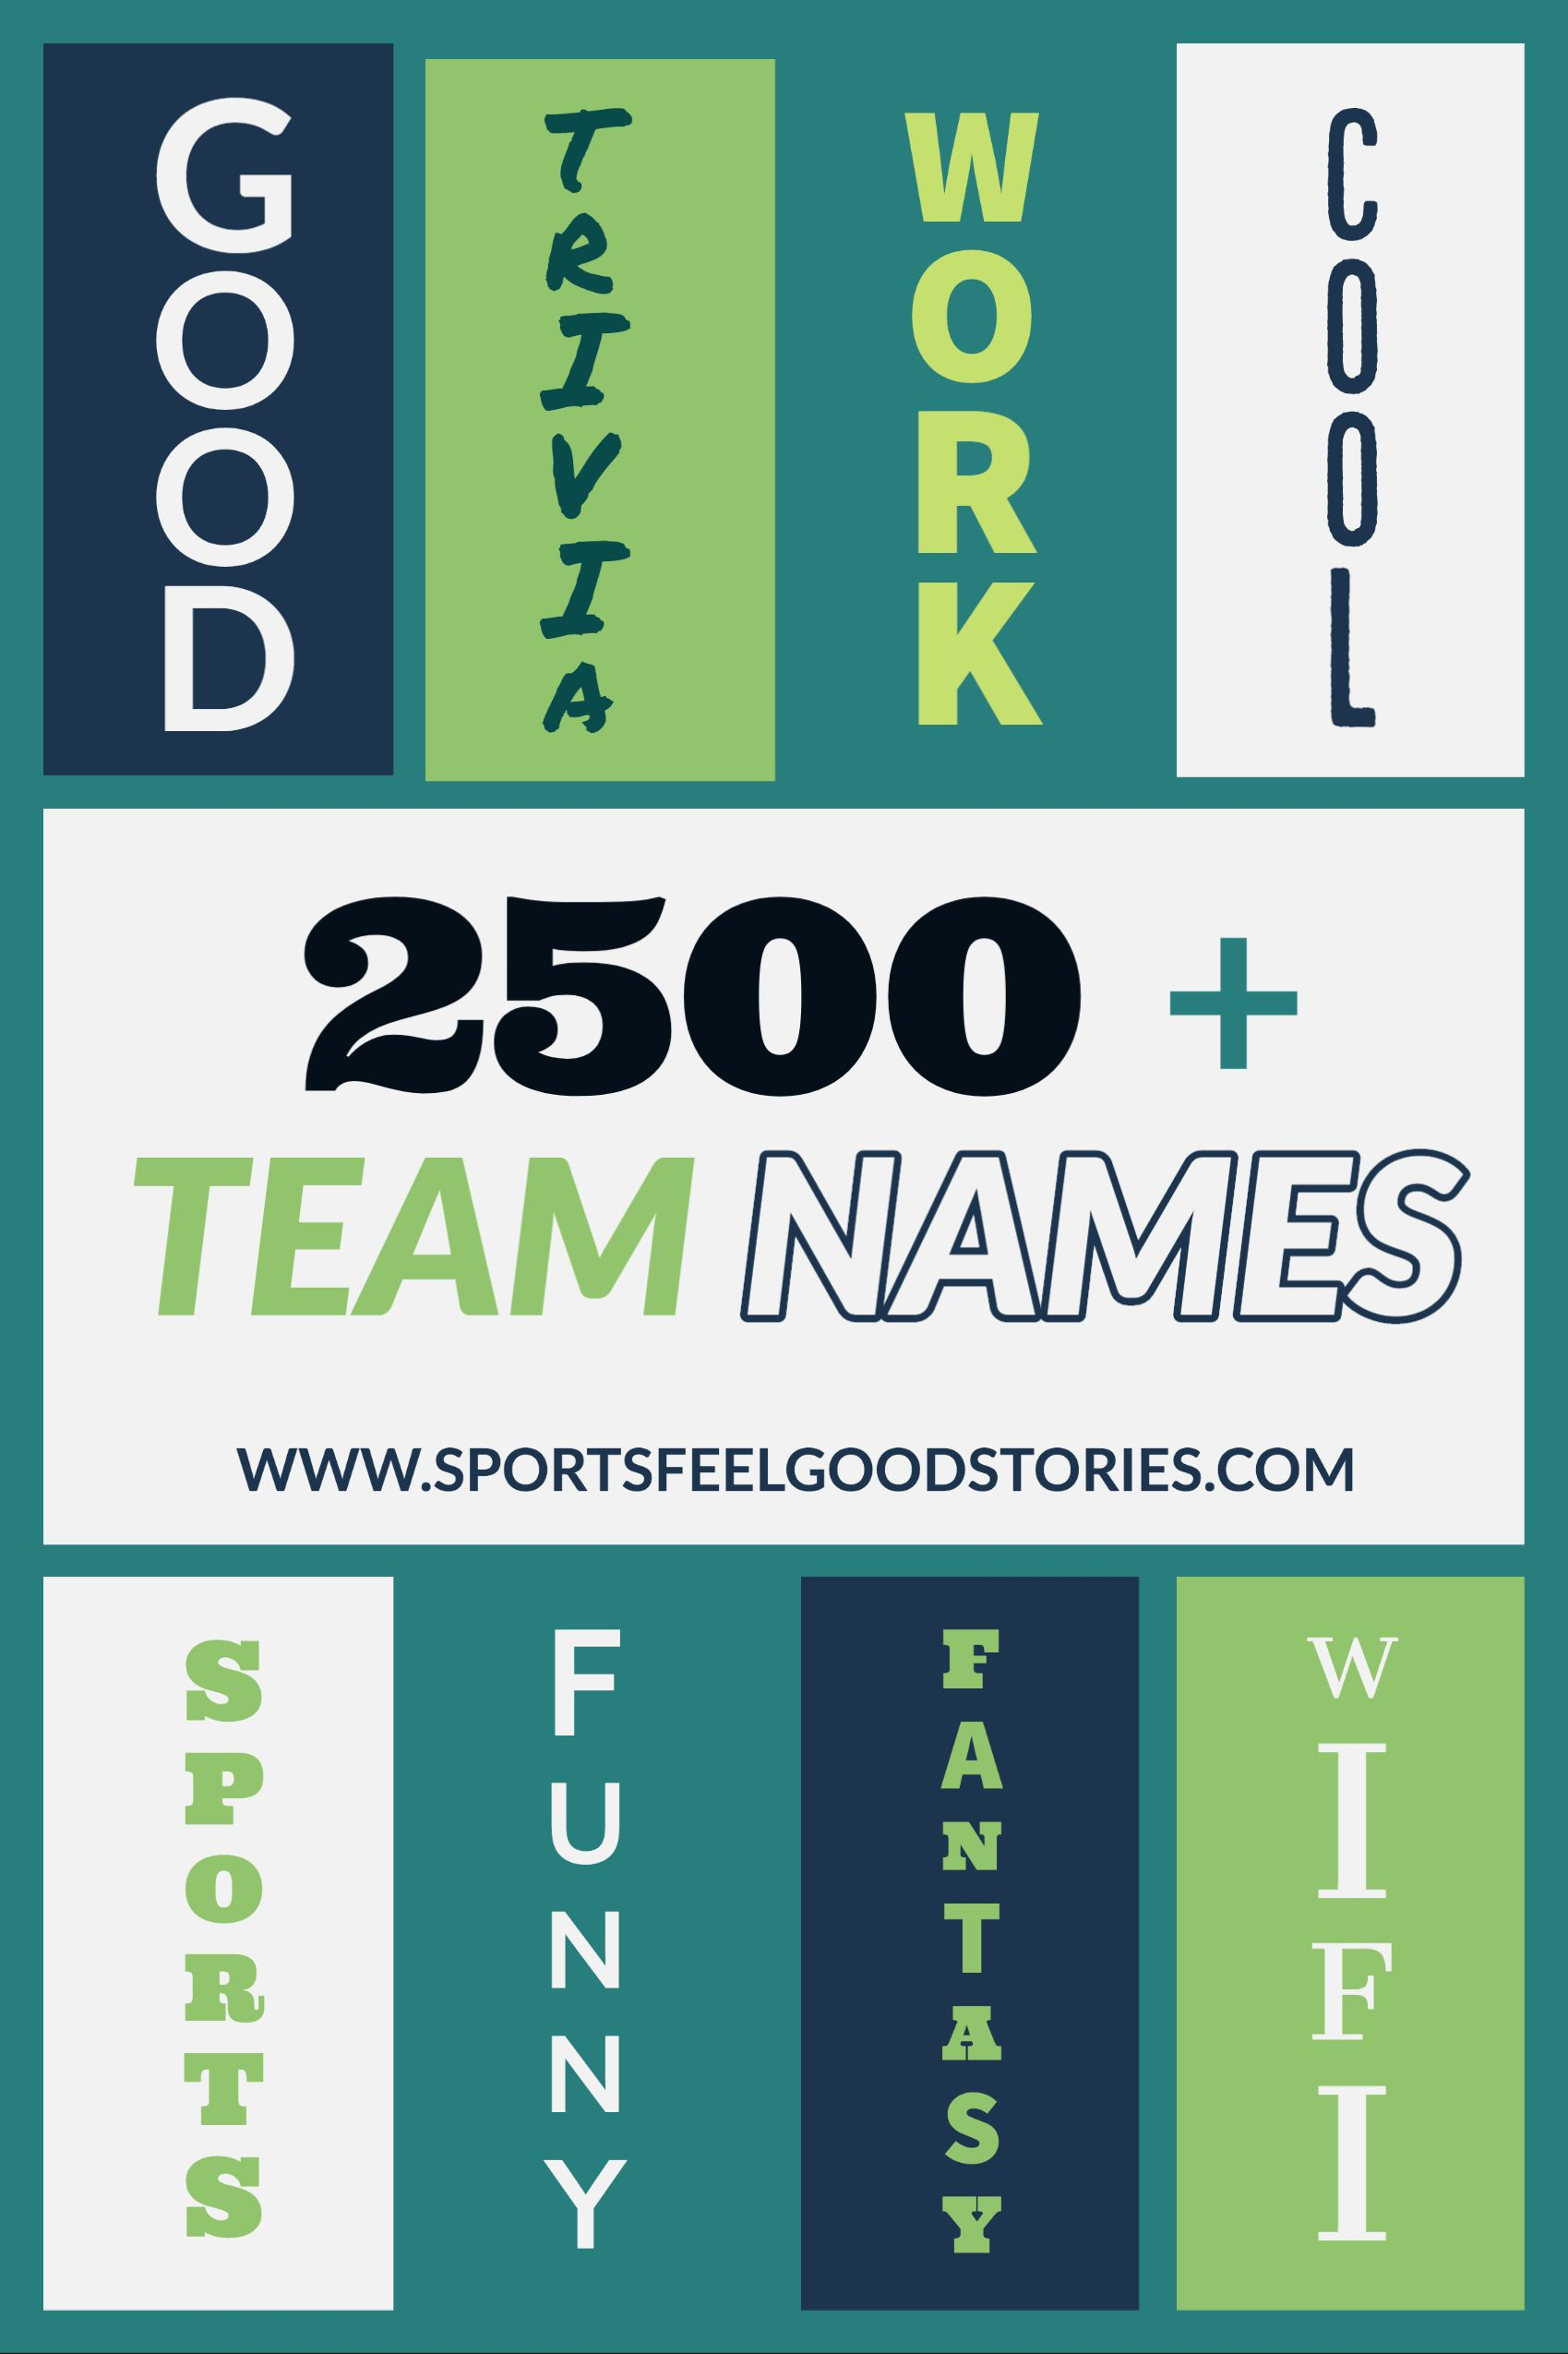 Best Team Names For Business Groups And Sports Clubs In 2020 Best Team Names Team Names Team Names List